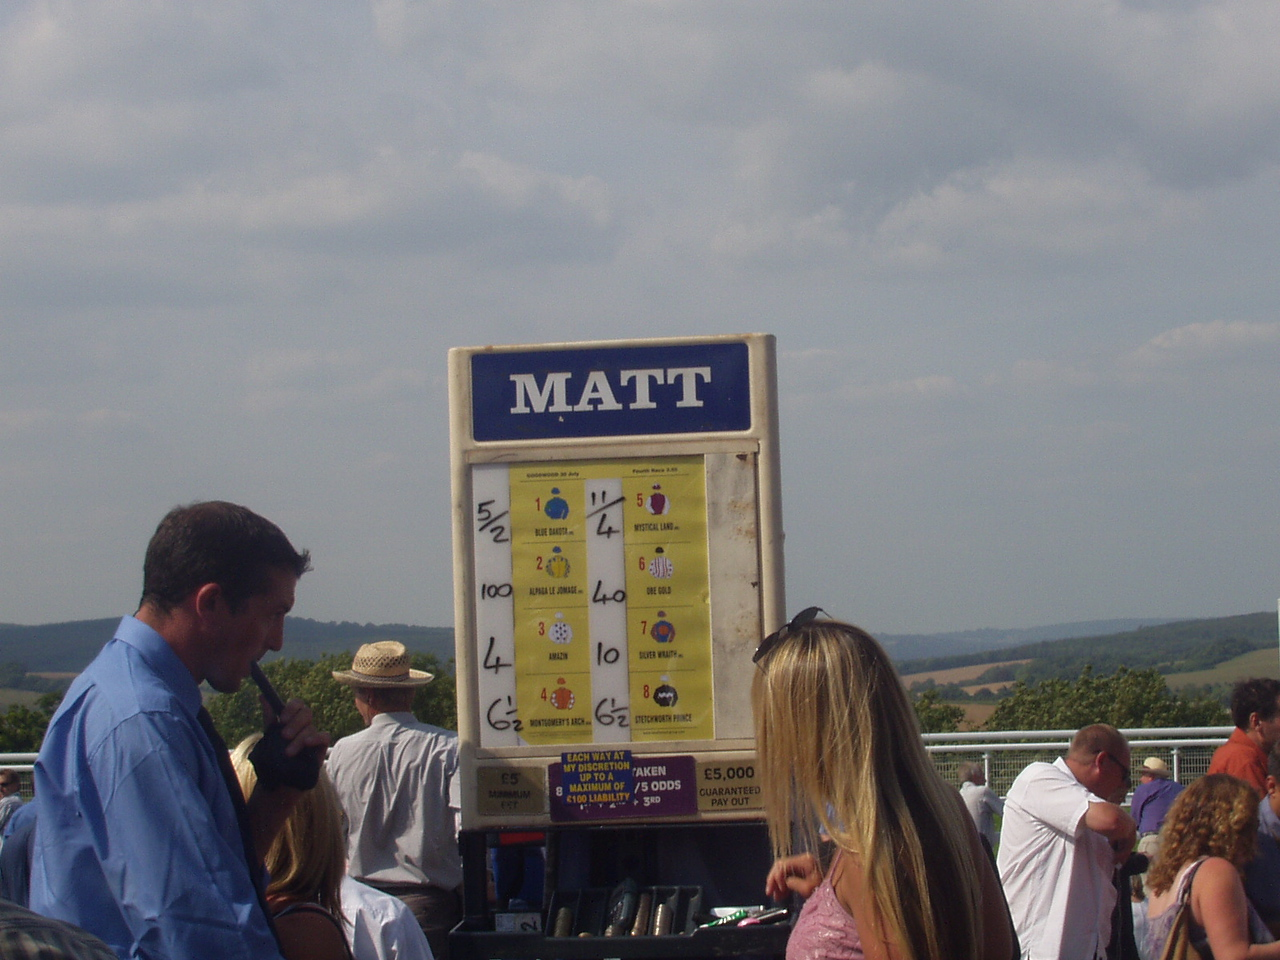 """Honest"" Matt the Bookmaker"